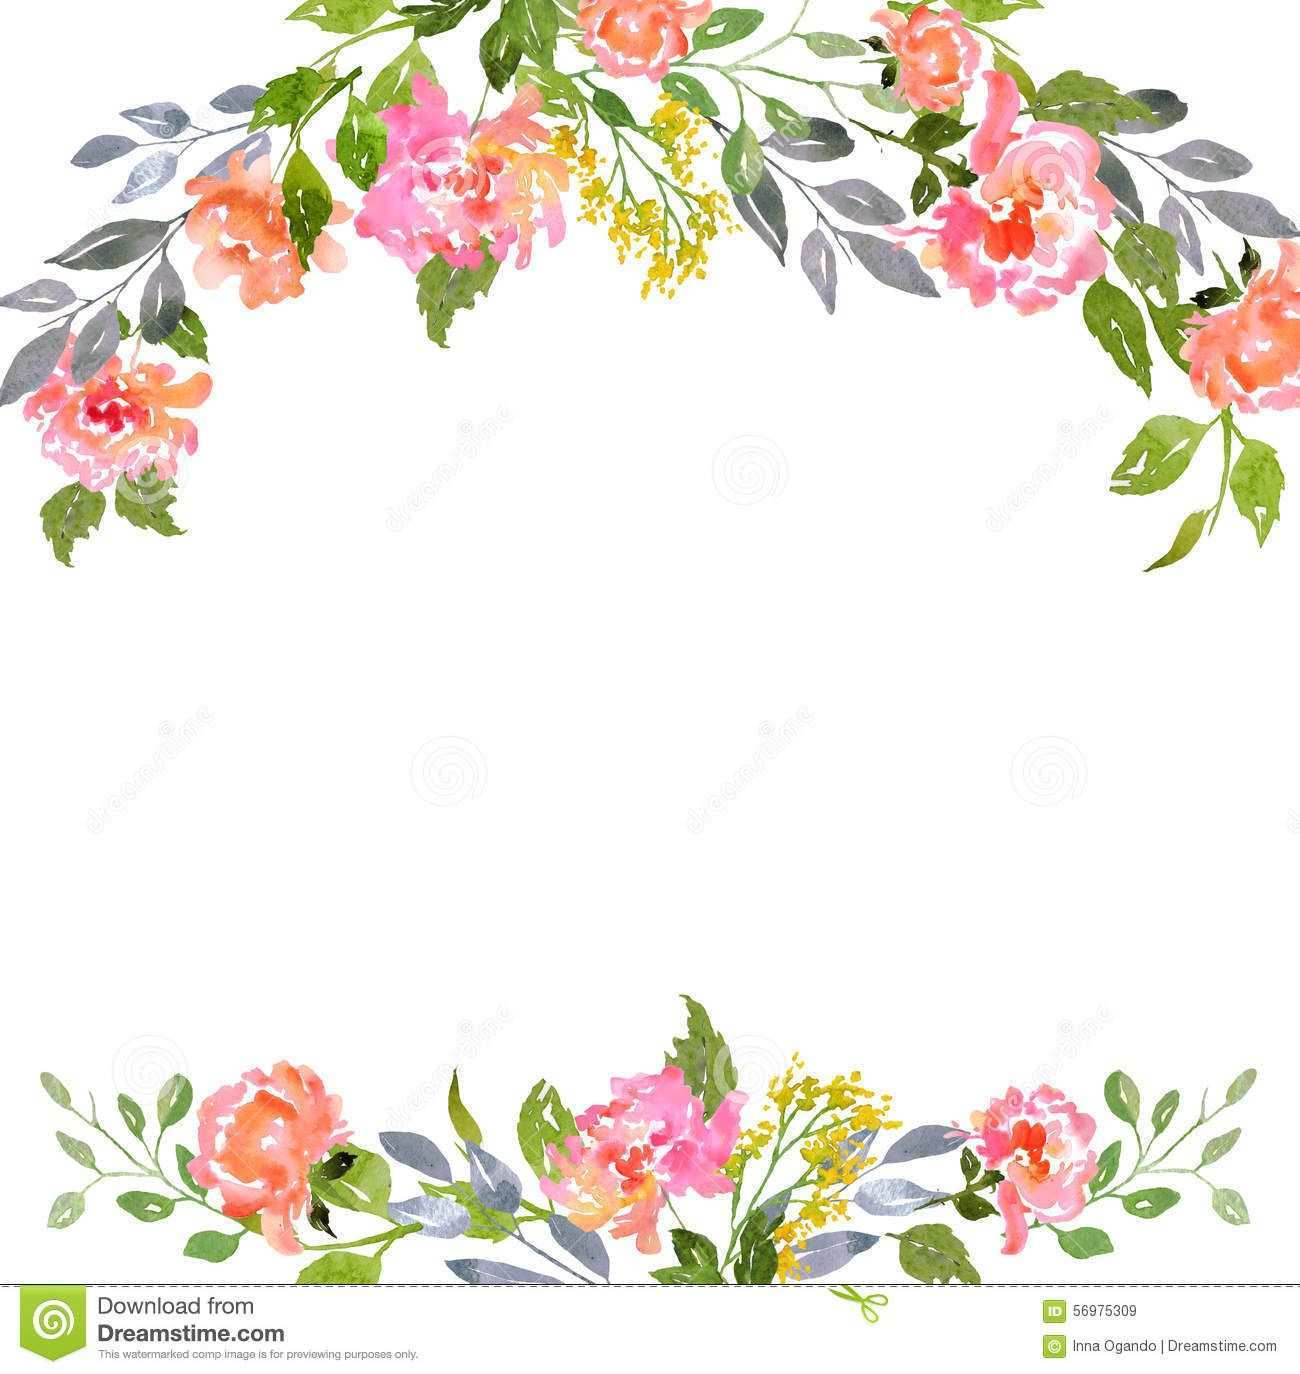 45 Online Floral Blank Invitation Template PSD File by Floral Blank Invitation  Template - Cards Design Templates